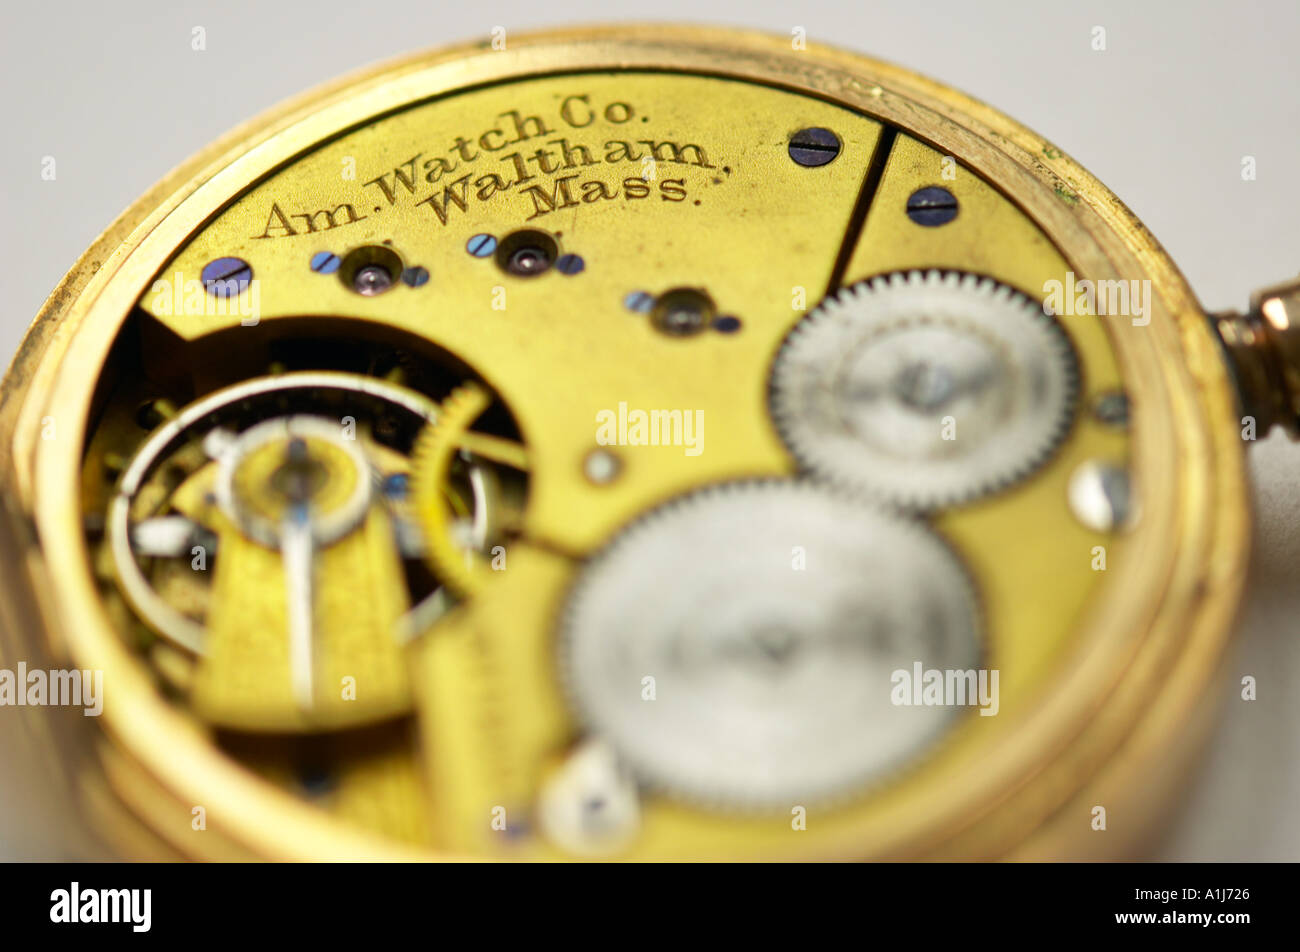 Close up of the clockwork mechanism of an old pocket watch - Stock Image